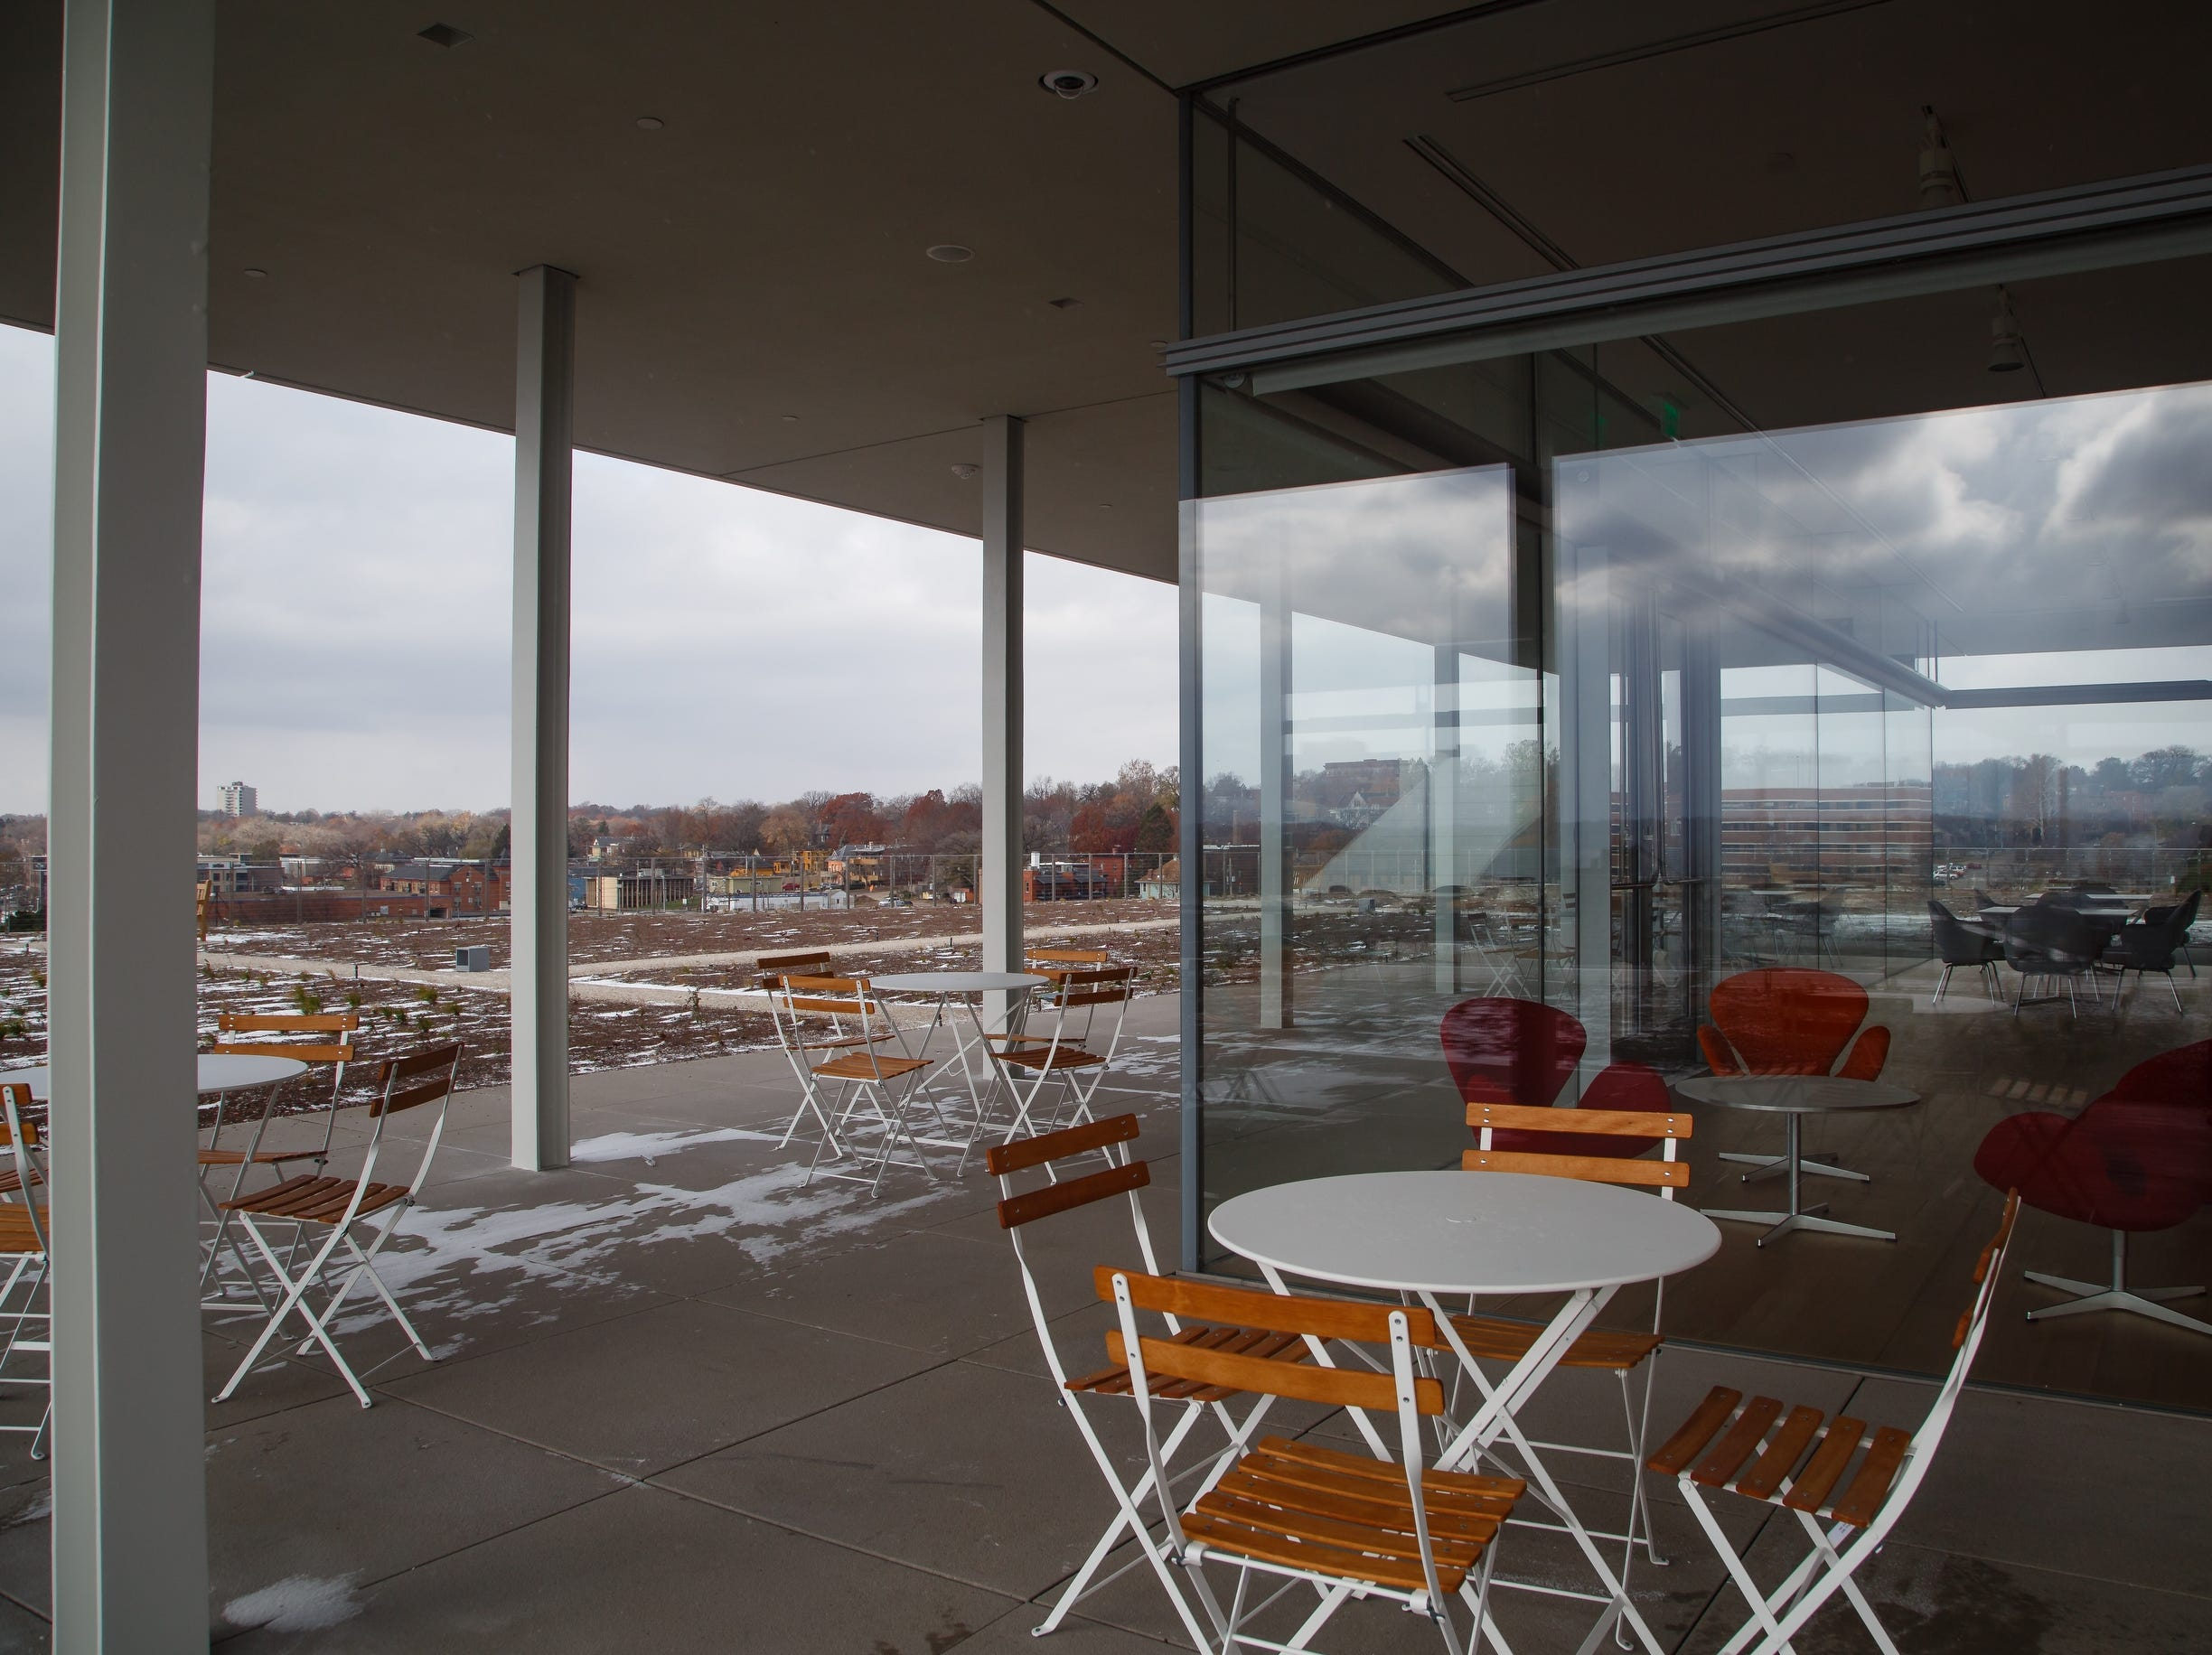 The sixth floor pavilion overlooking the sculpture park is seen at the new Krause Gateway Center downtown on Friday, Nov. 9, 2018, in Des Moines.